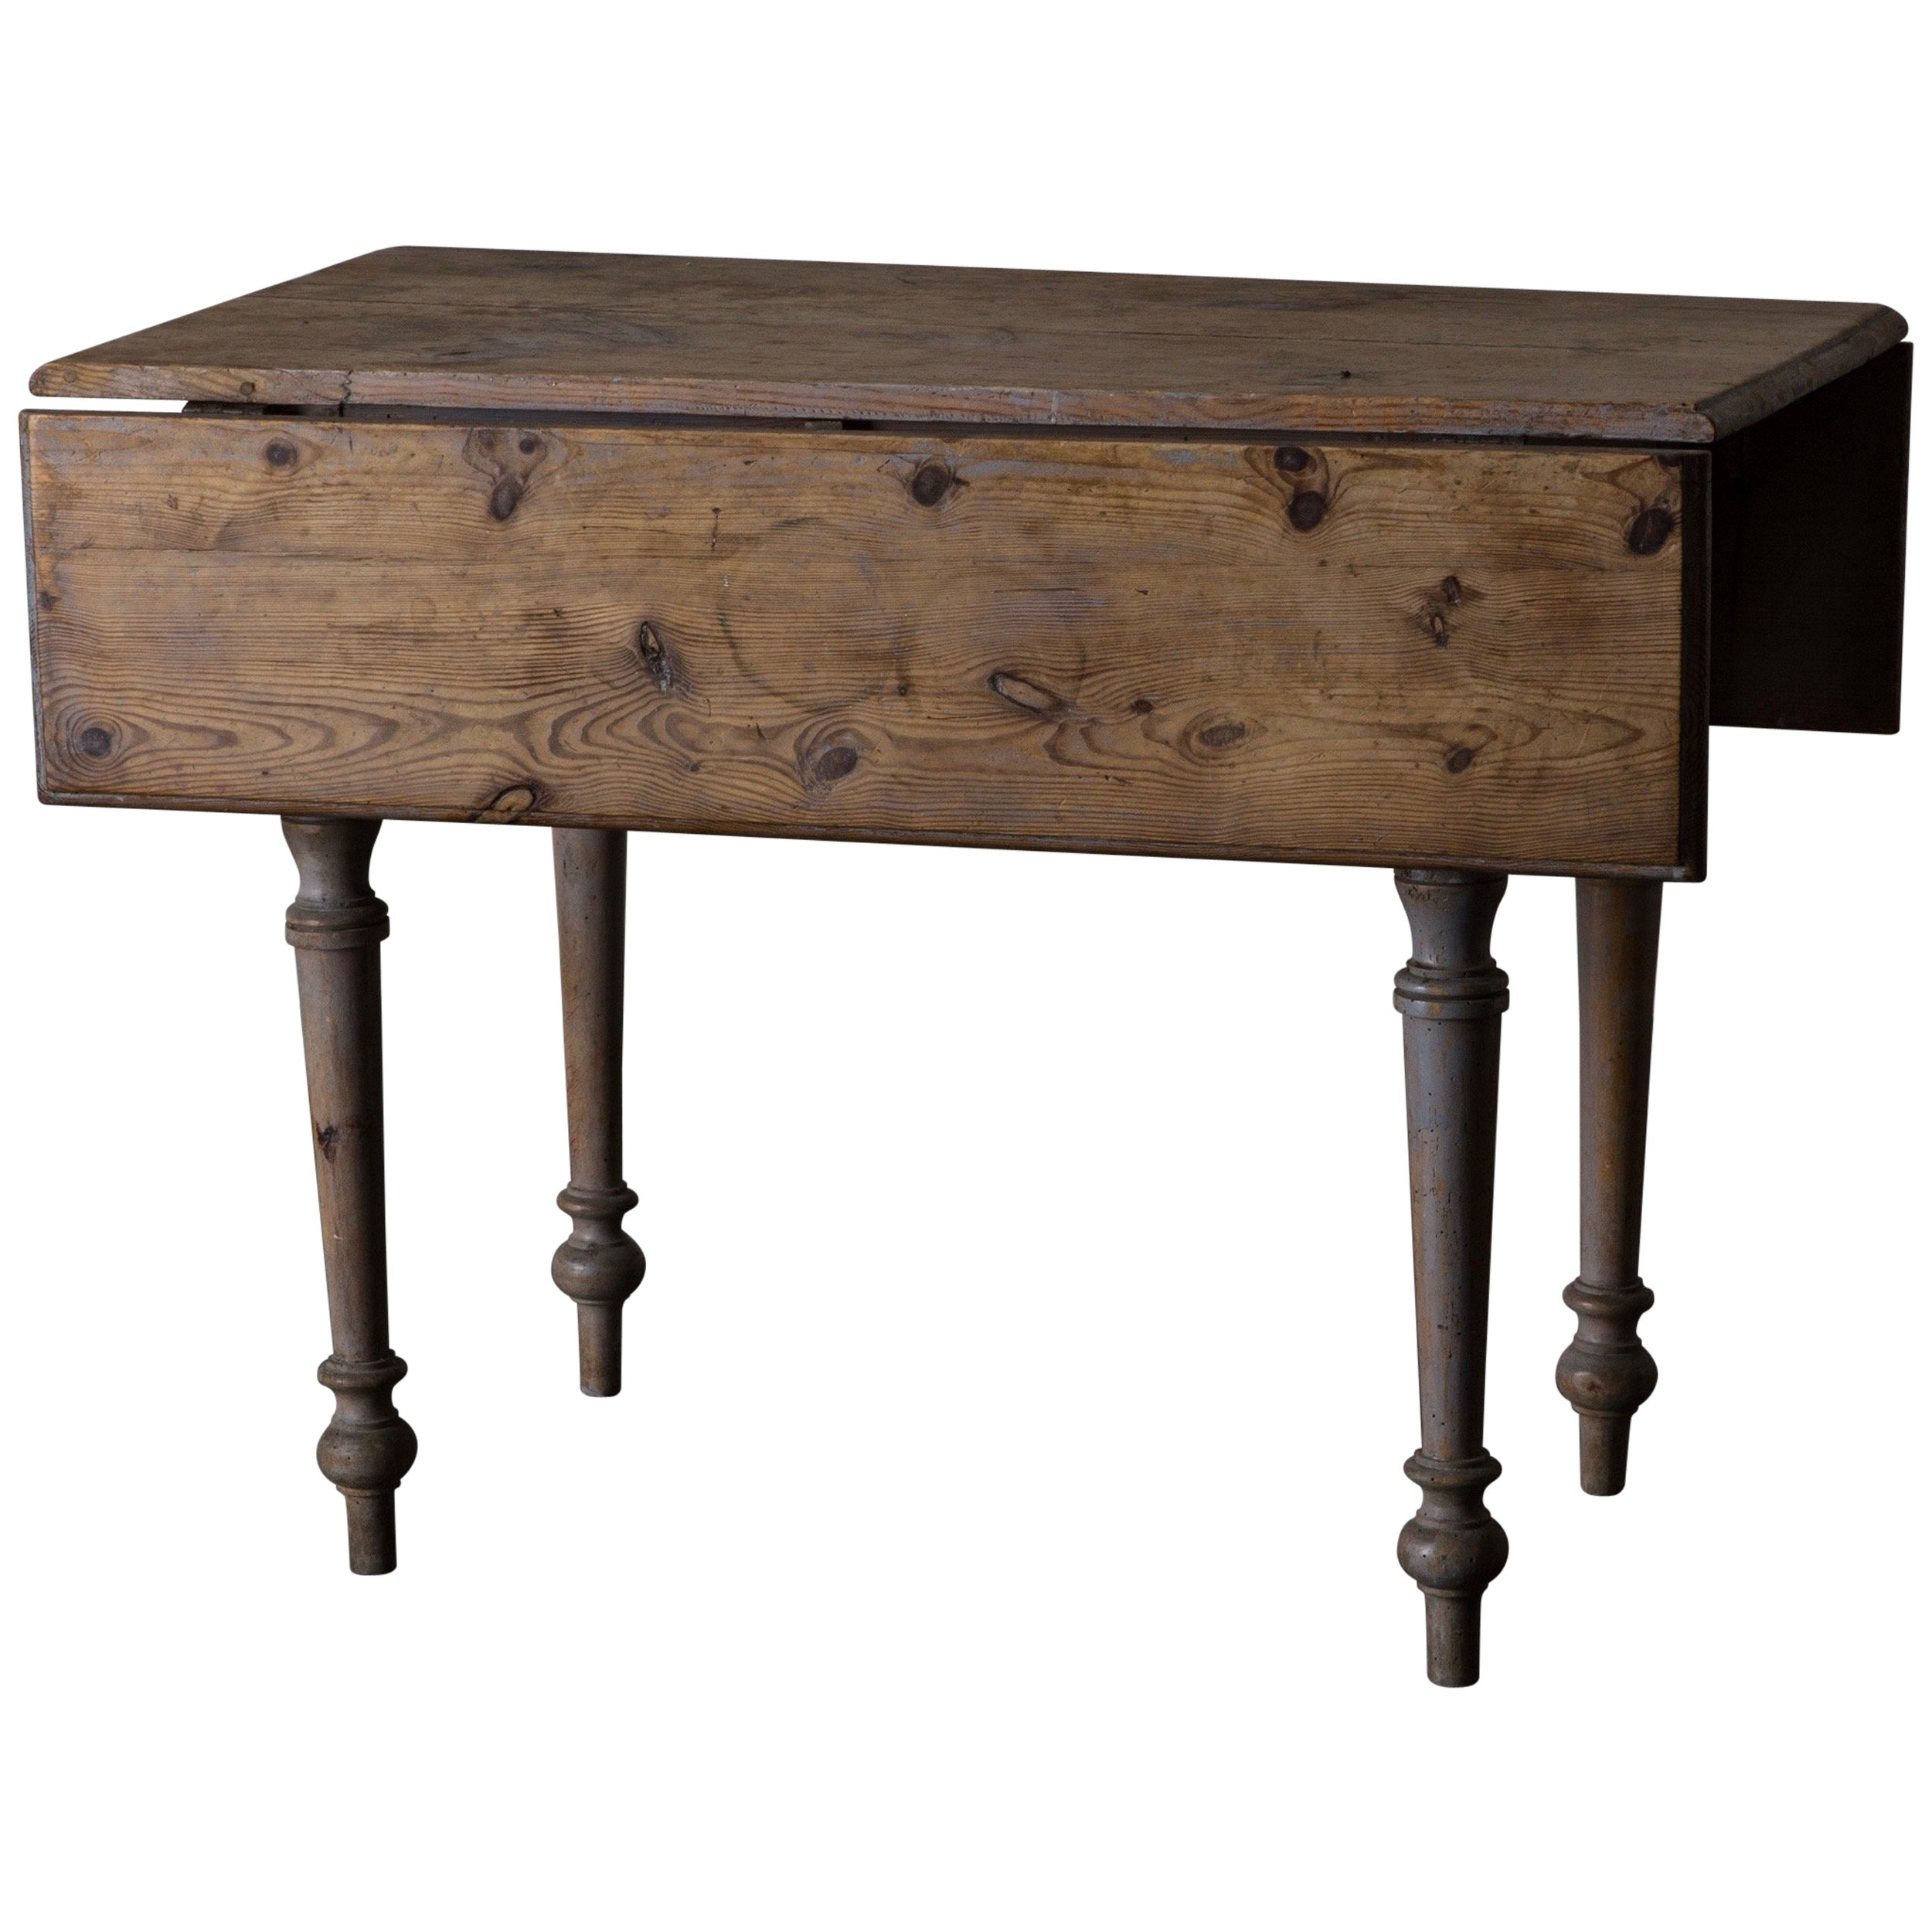 Table Drop Leaf, 19th Century, Sweden